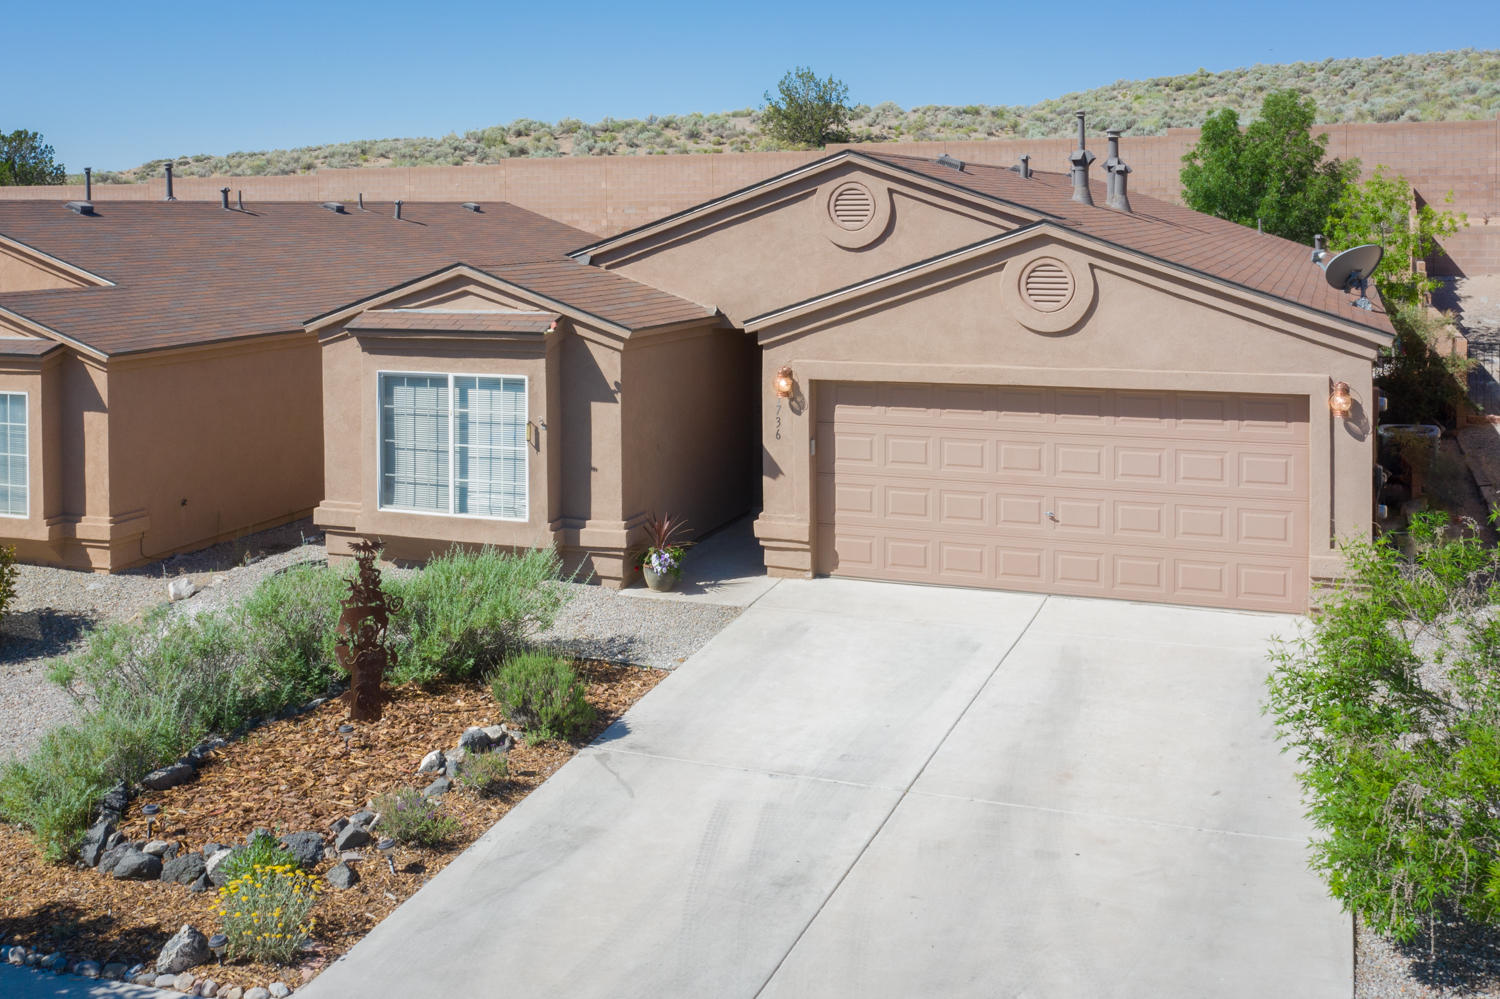 You are sure to love this 4 bedroom single story home nestled in the Sierra Norte subdivision in Rio Rancho.  This popular single story plan has 1694 sqft in all the right places! Immediately when you step in you'll notice the upgraded carpet welcomes you home.  In the kitchen you will  find granite,  newer stainless appliances, and a very functional layout. The spacious master is secluded to the rear of the home off of the very open living room. The surprise continue as you head outback to the recently update and upgraded backyard. This little oasis has the perfect covered flagstone patio, and custom sunshades so you can enjoy your evenings with out too much sun. When you combine all this with a very affordable budget, you will want to see this hidden gem sooner than later.